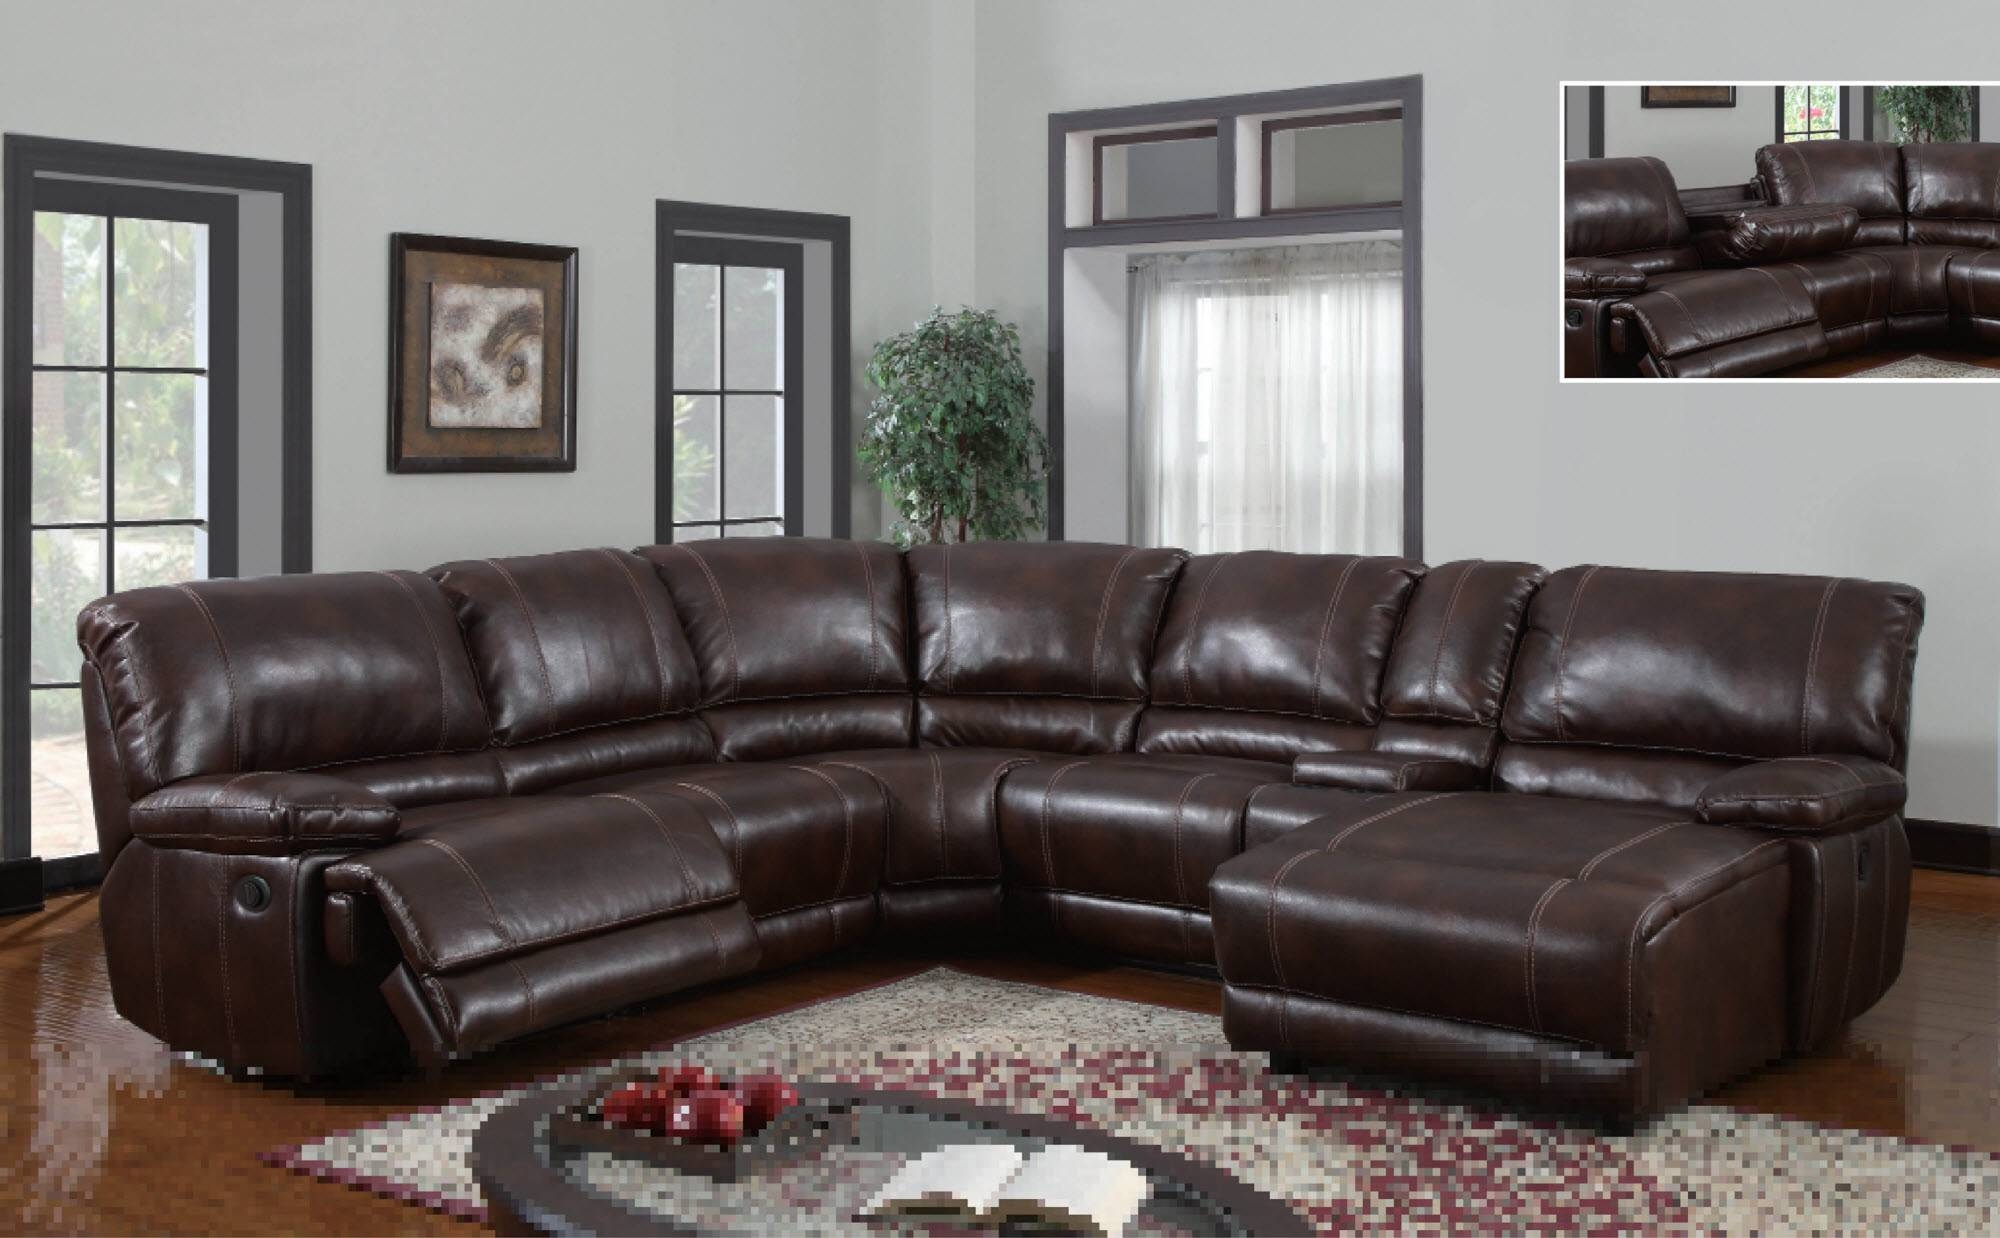 Trend Sectional Sofas Bay Area 77 In Petite Sectional Sofa With Intended  For Petite Sectional Sofas .